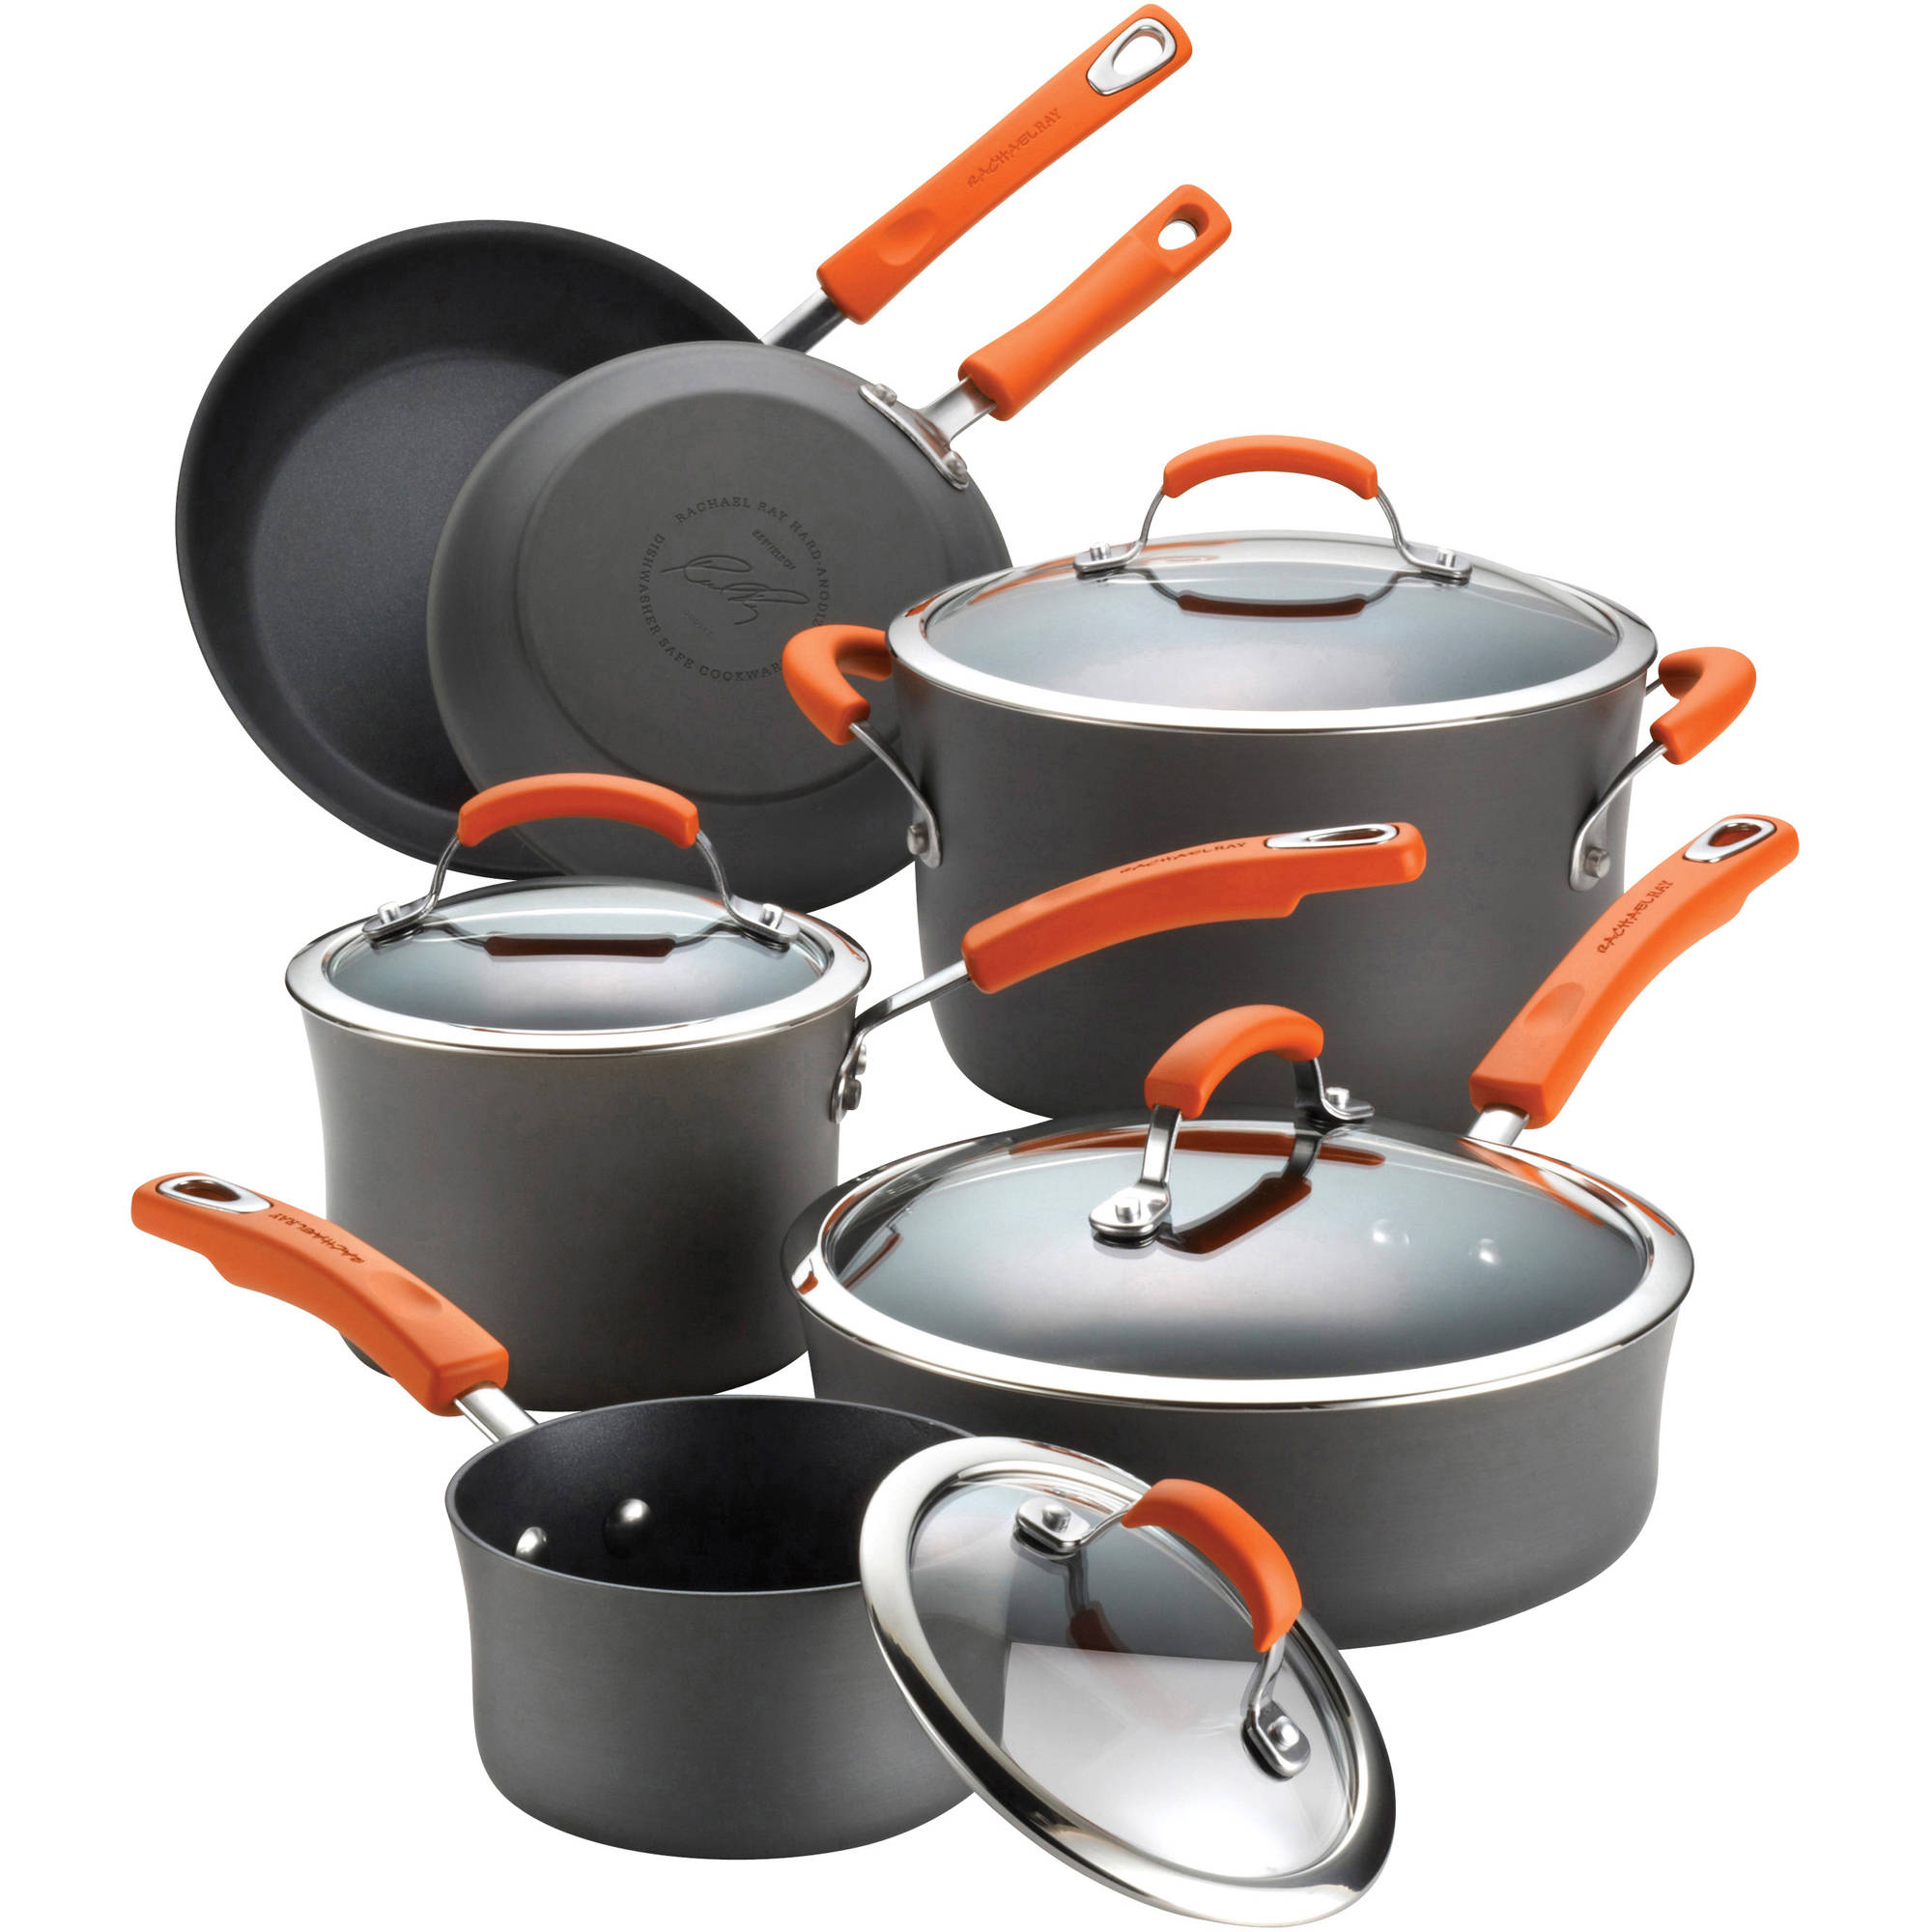 Rachael Ray Dishwasher Safe Hard Anodized 10-Piece Cookware Set